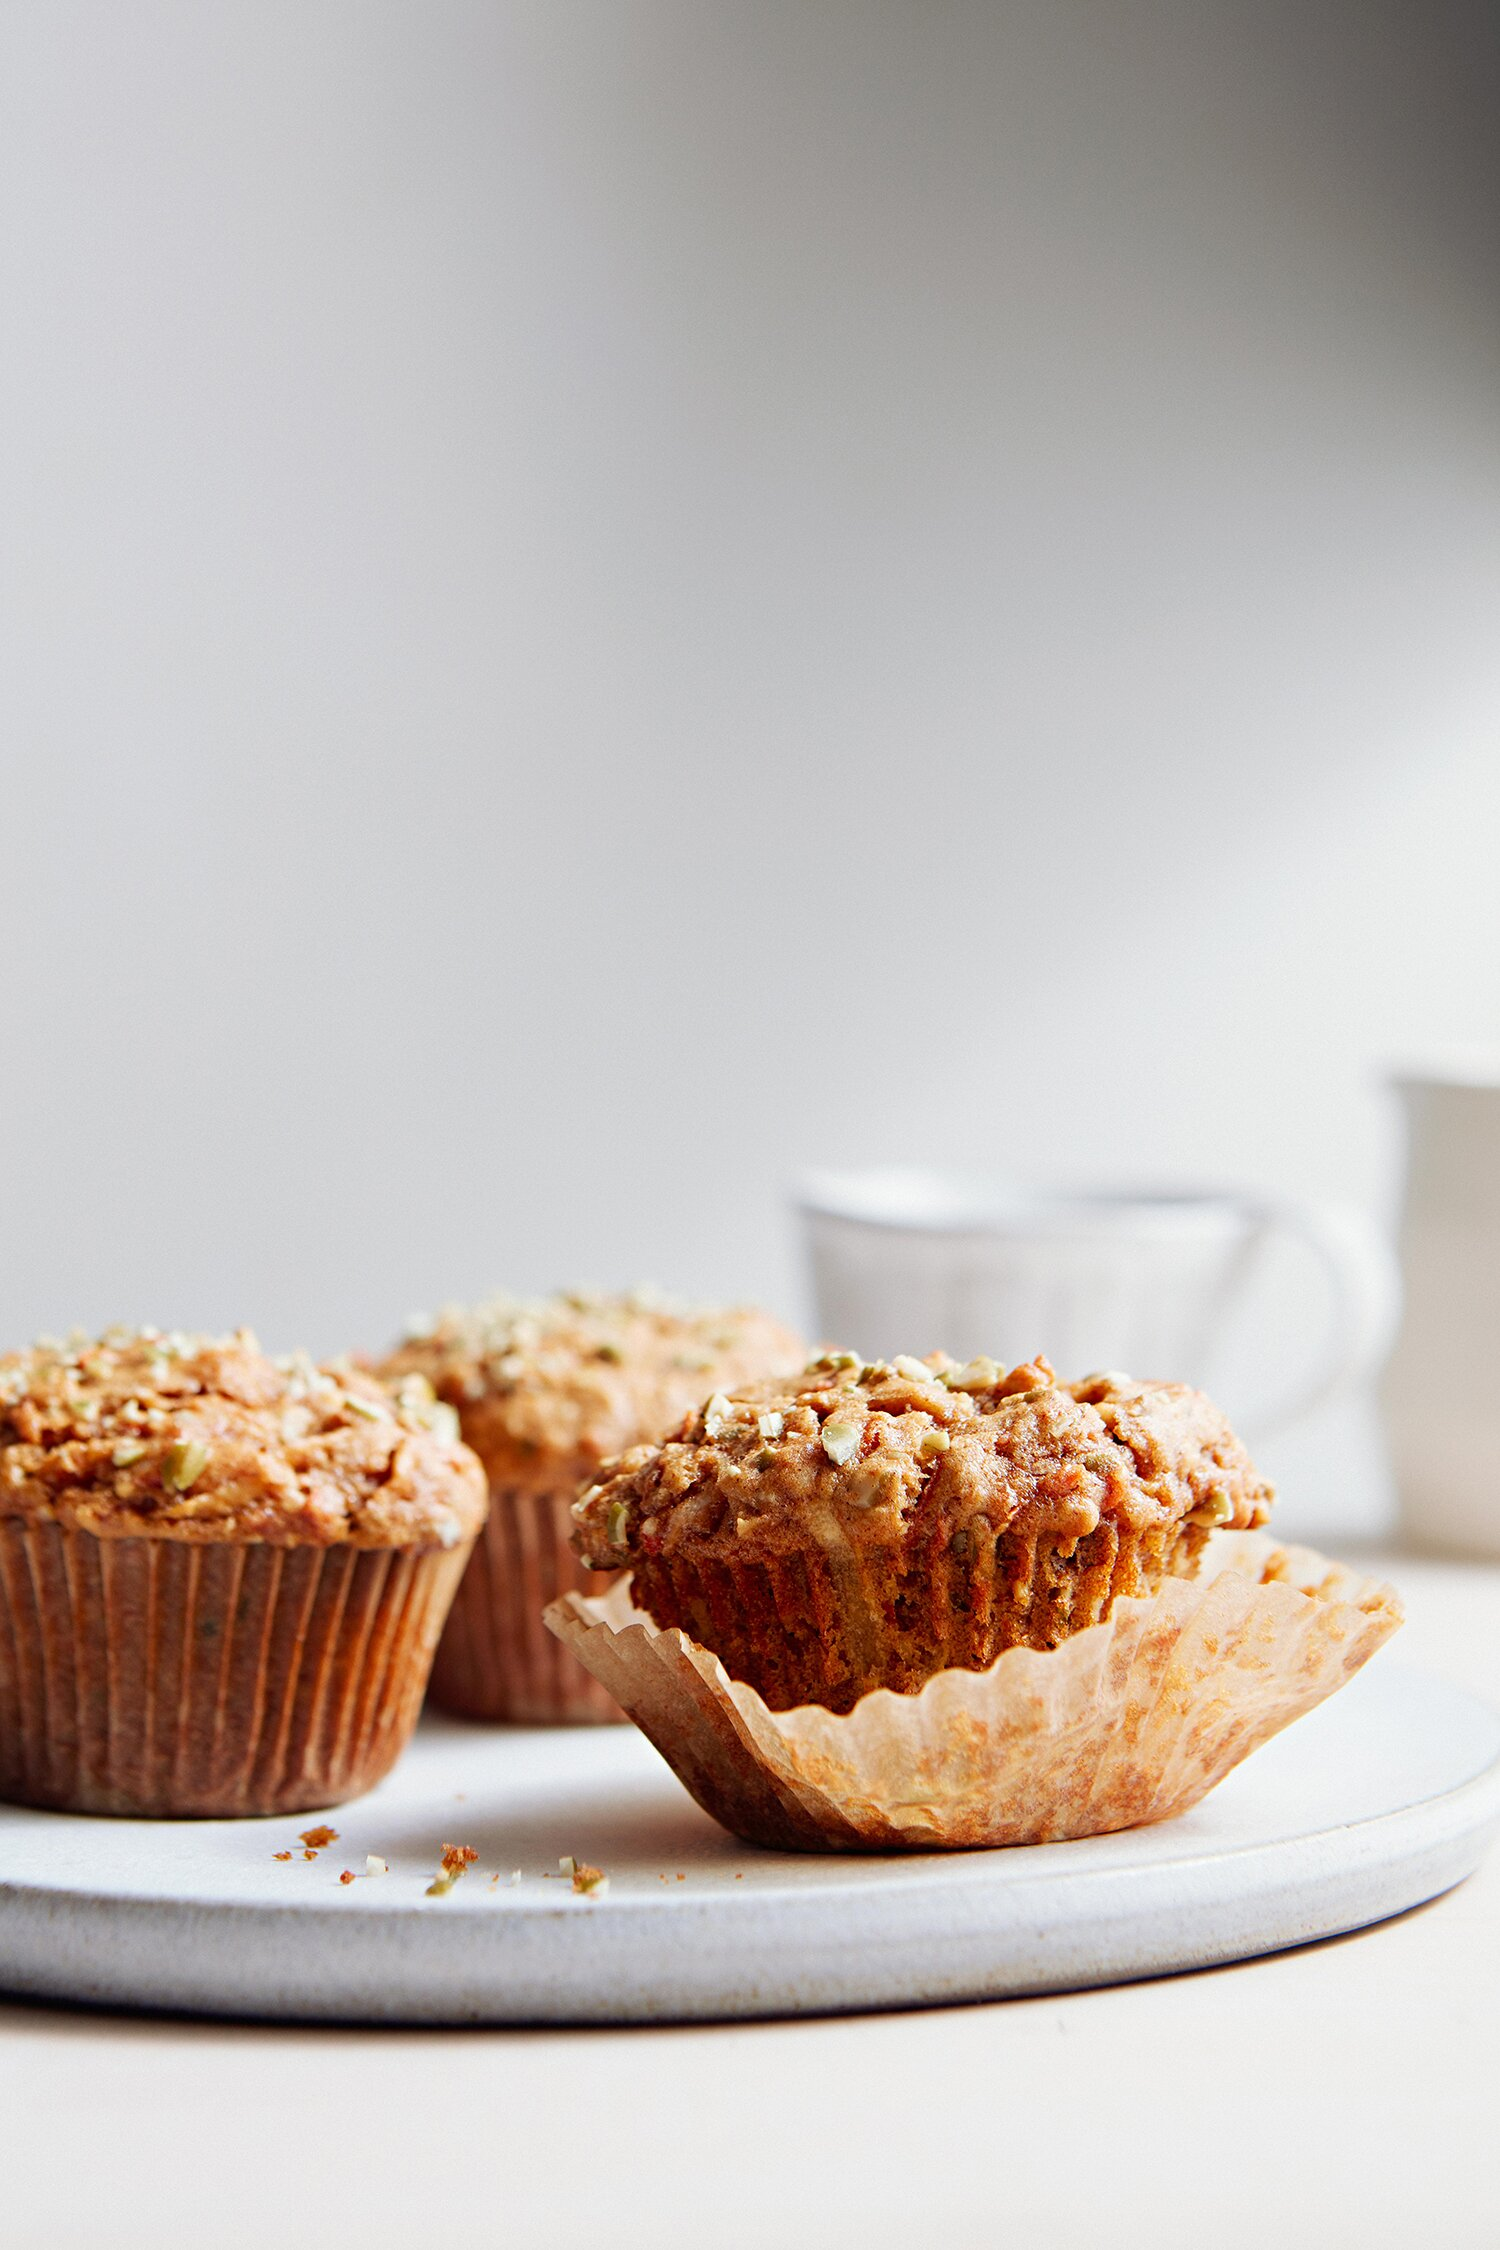 Marvelous Muffin Recipes For Breakfast Brunch Or Anytime